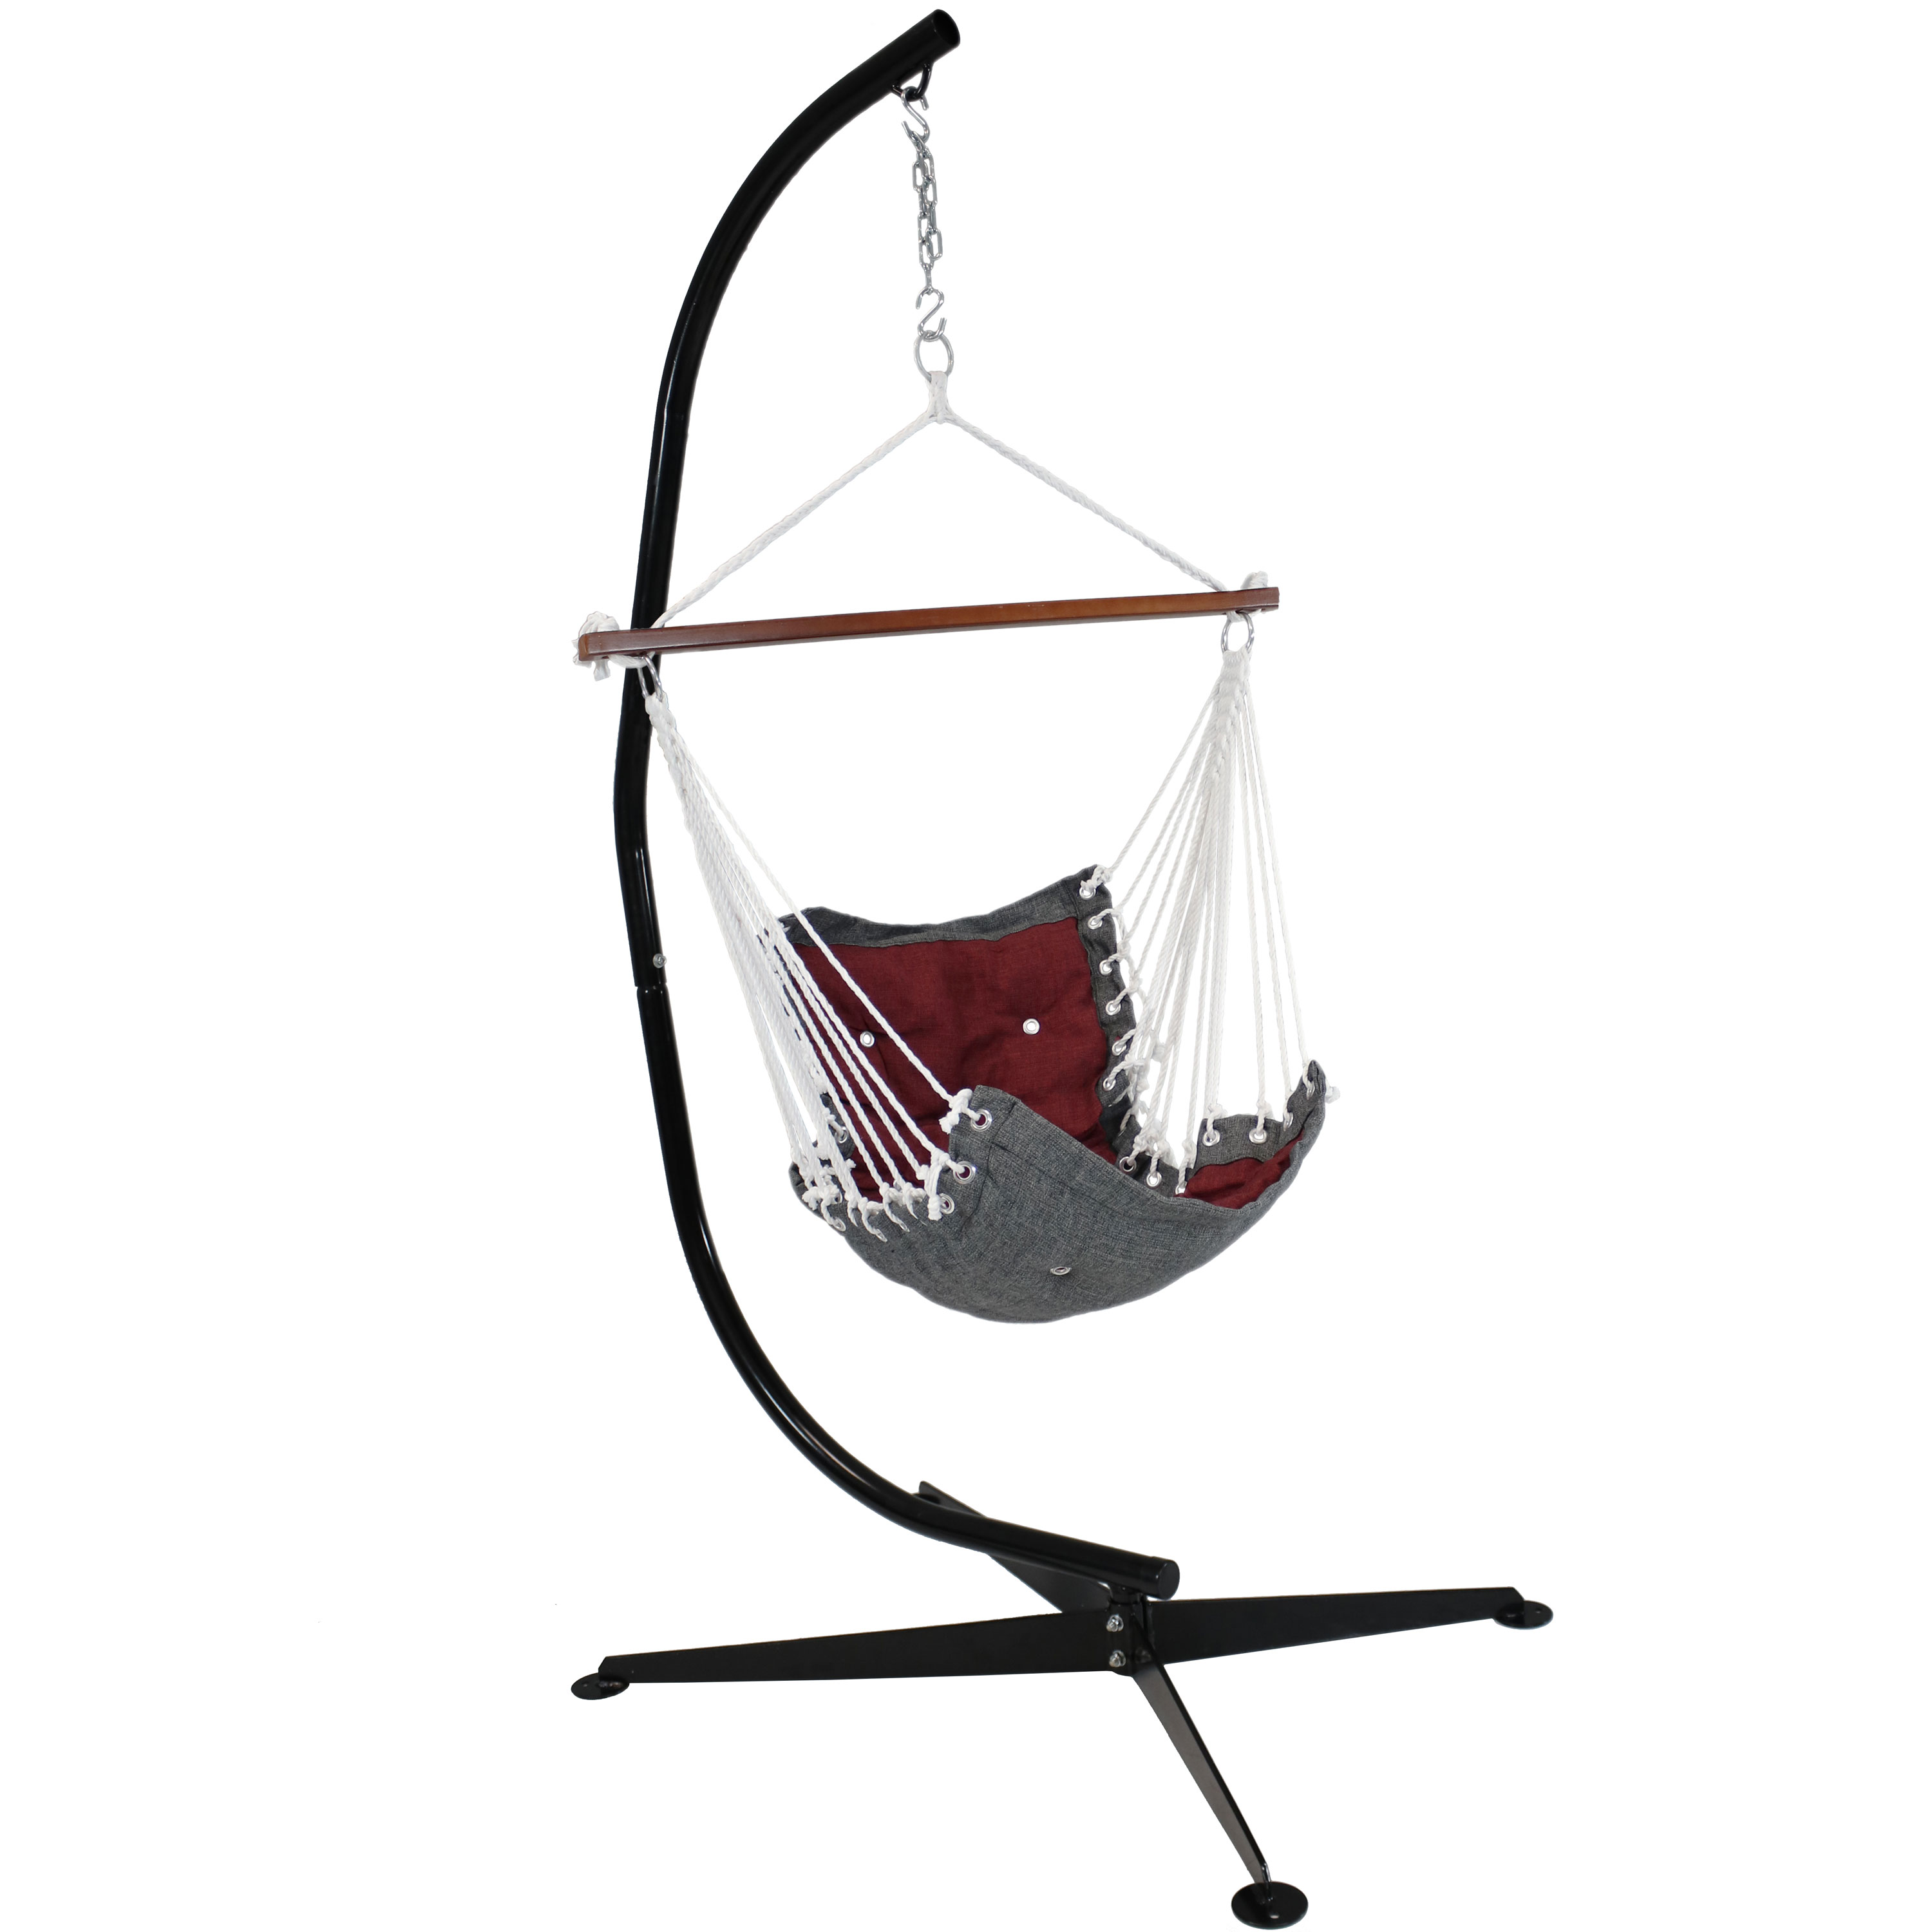 Tufted Hanging Rope Hammock Chair Stand Swing Seat Red Photo